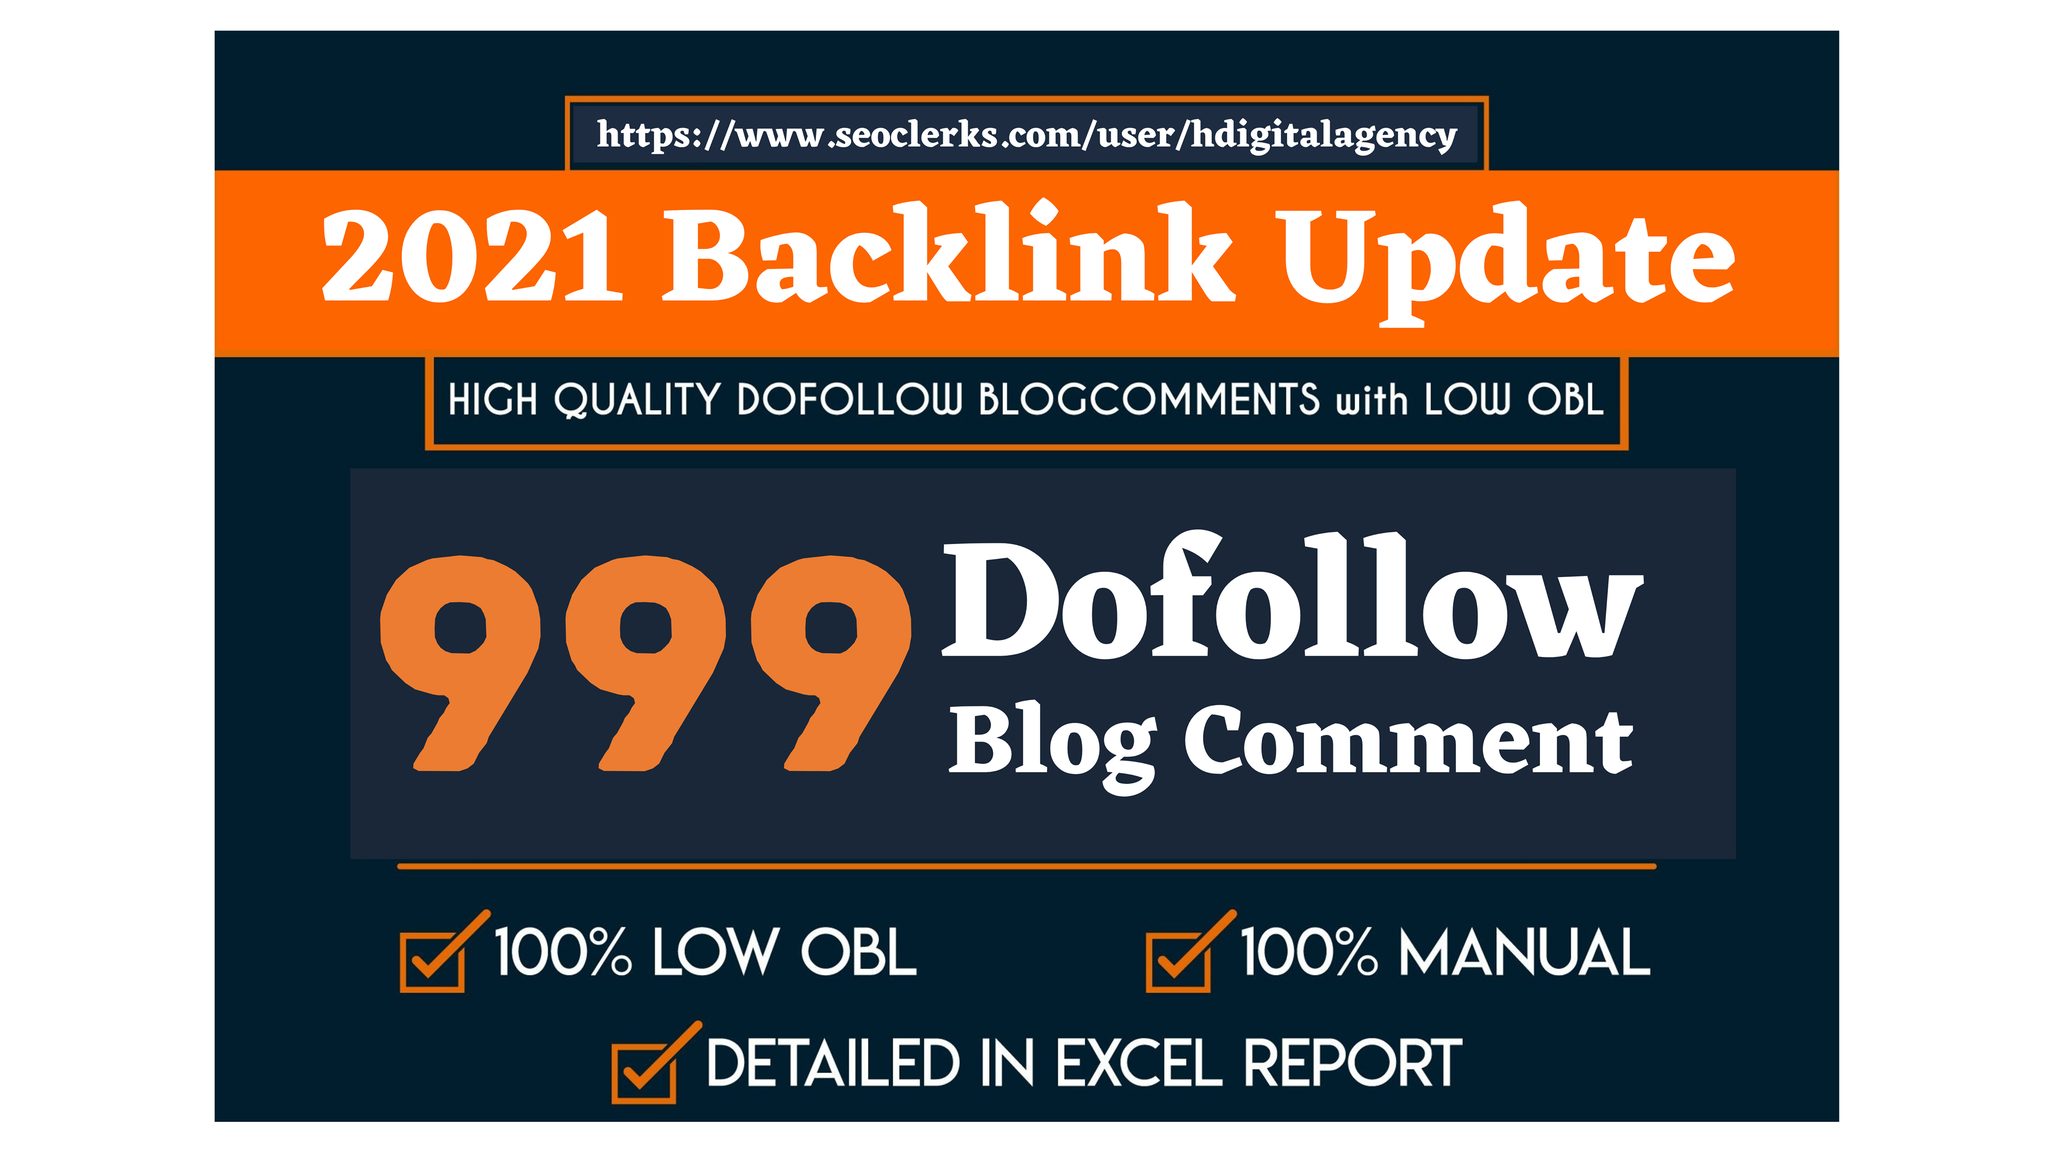 I will create 999 dofollow blog comment backlinks